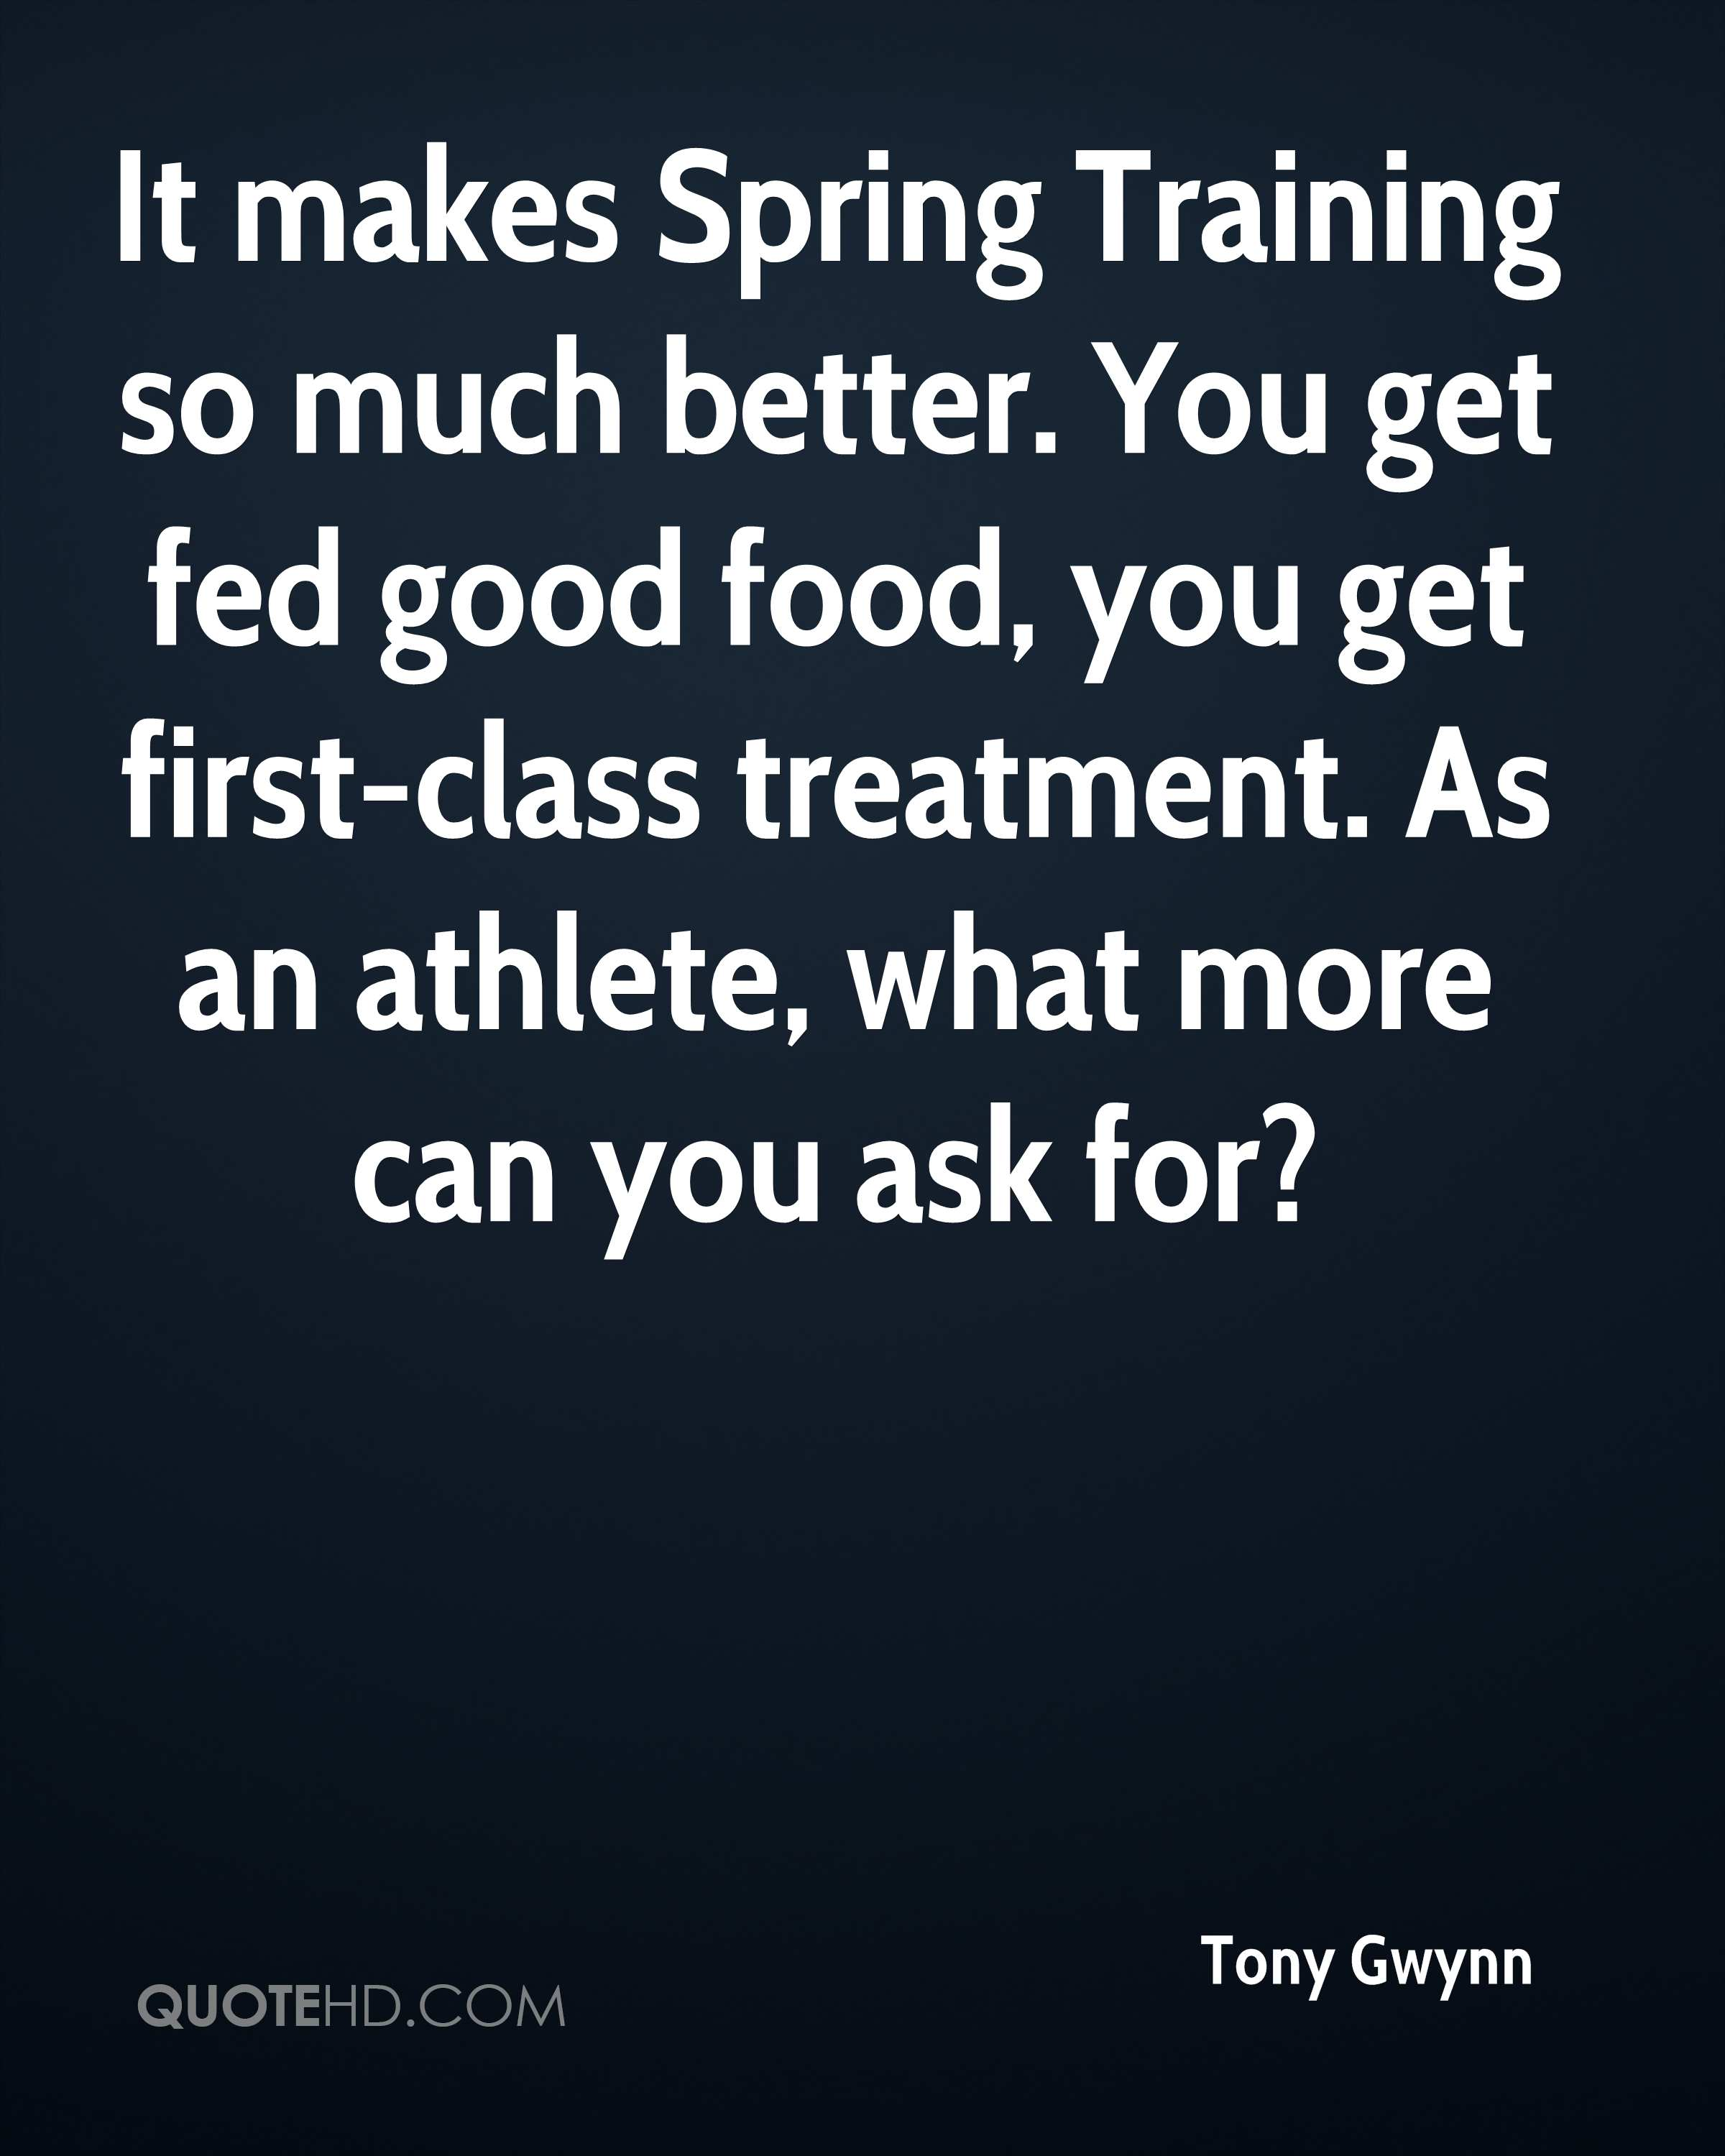 It makes Spring Training so much better. You get fed good food, you get first-class treatment. As an athlete, what more can you ask for?